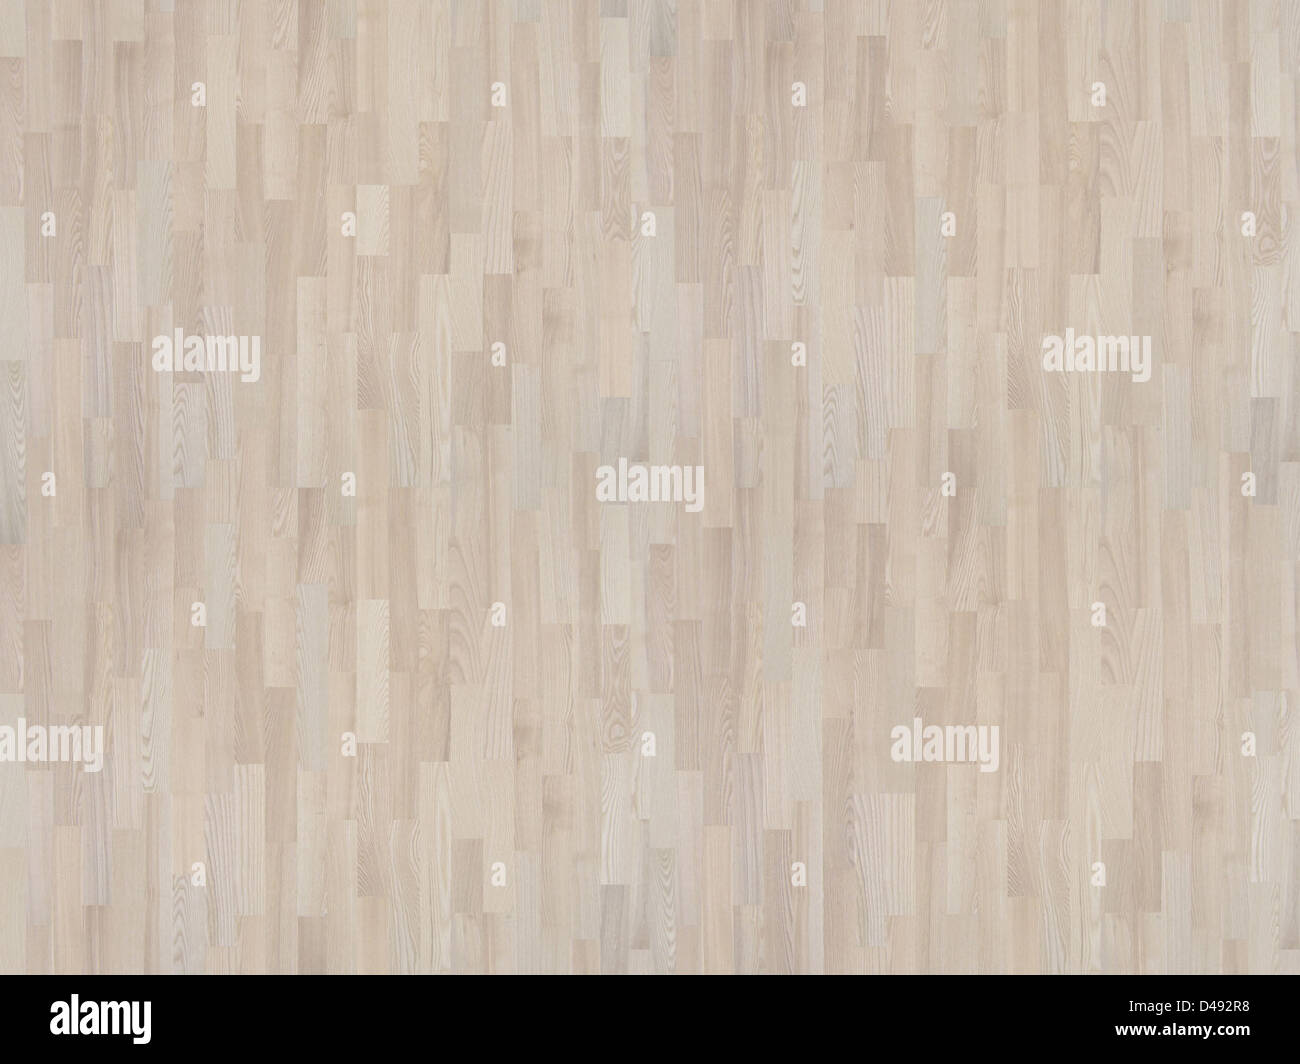 Seamless Texture White Ash Wood Floor